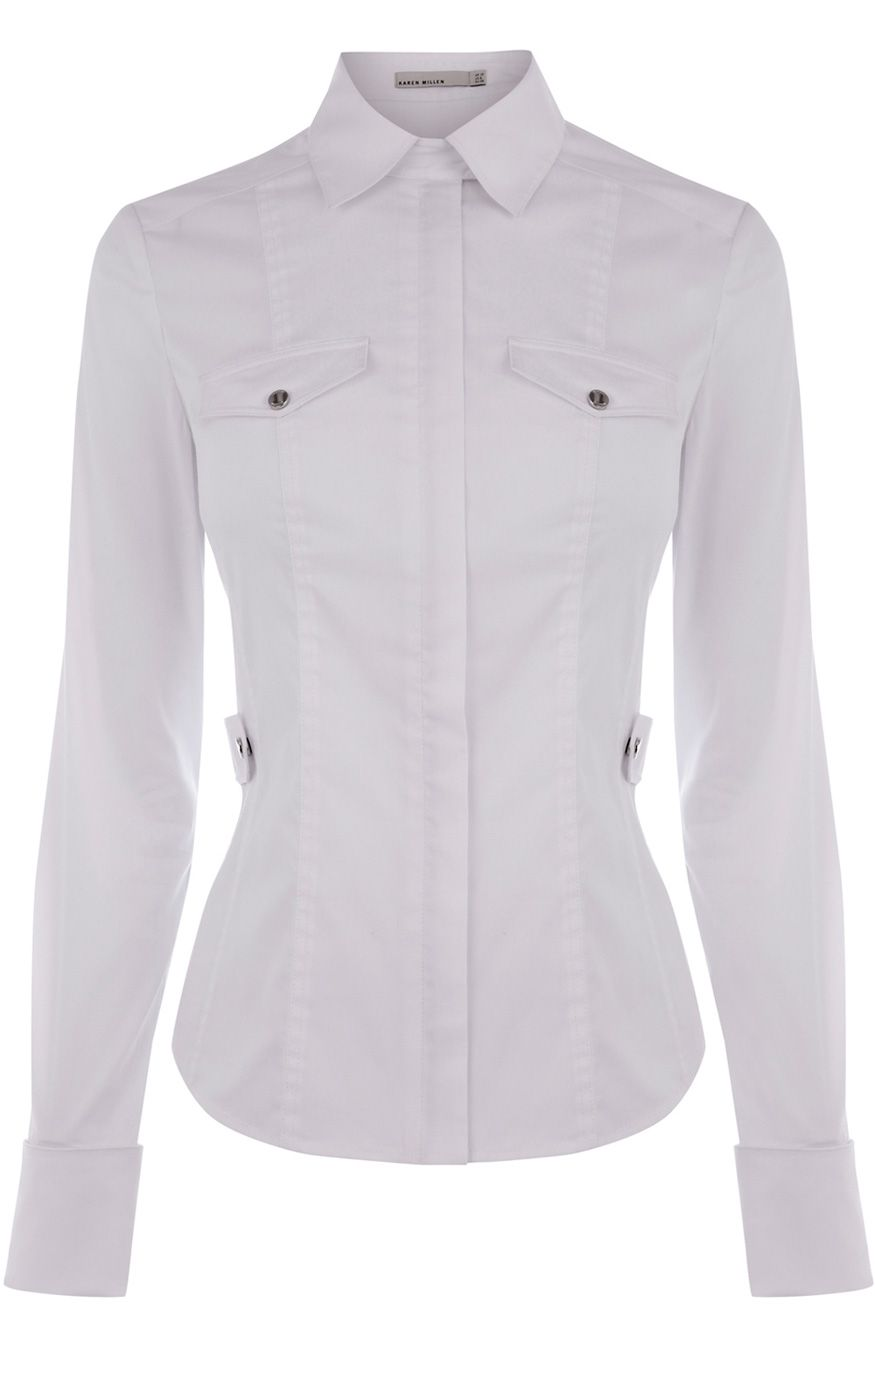 Karen millen clean cotton shirt in white lyst for How to clean white dress shirts